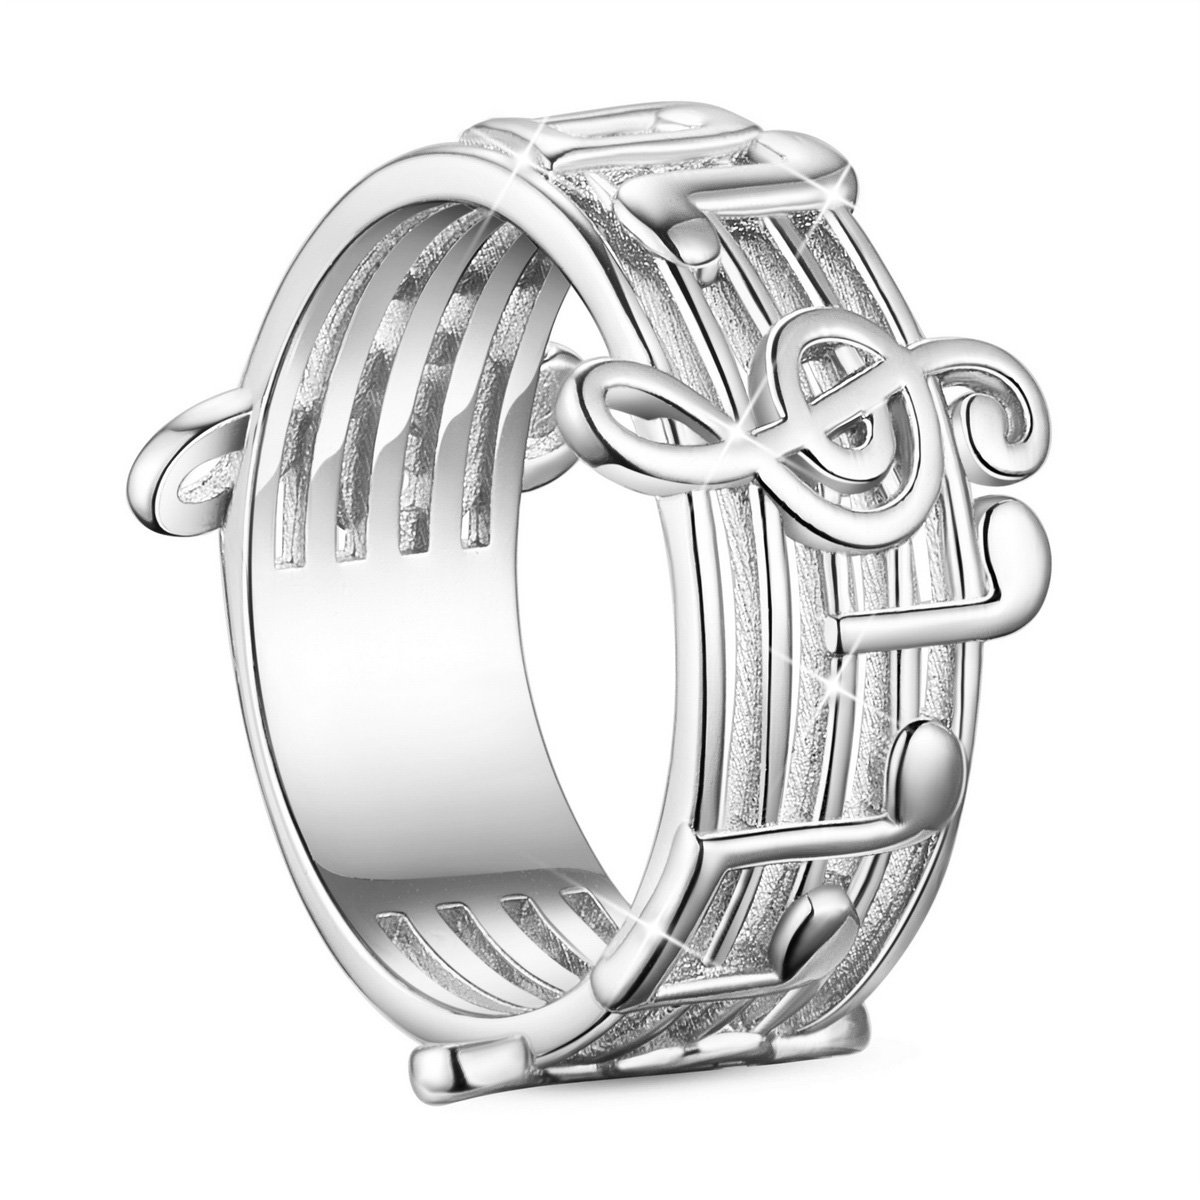 SHEGRACE 925 Sterling Silver Finger Ring with Musical Notes